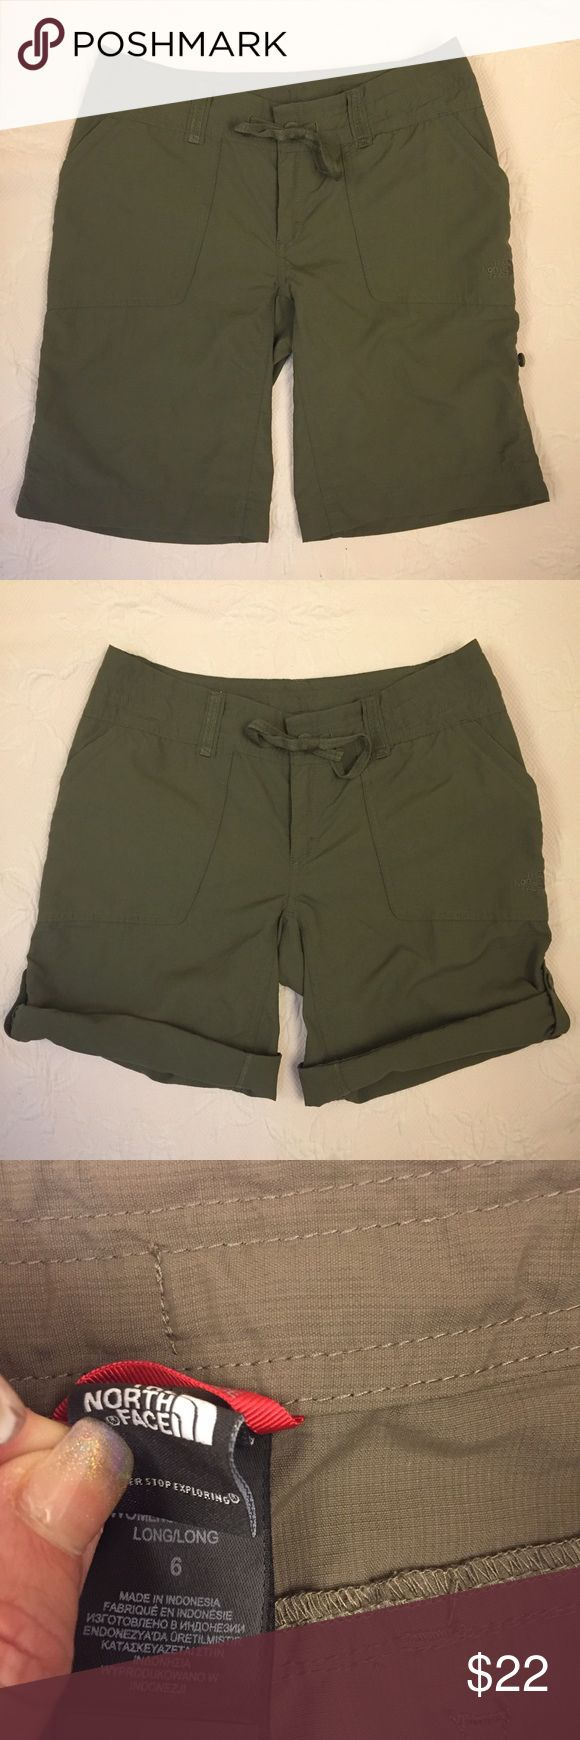 The North Face women's brown shorts size 6 tall The North Face women's brown shorts size 6 tall. These shorts are perfect for hiking and have buttons to roll and button up as seen in 2nd photo. Two front hand pockets, two back buttoned pockets and one inside stow pocket. The North Face Shorts